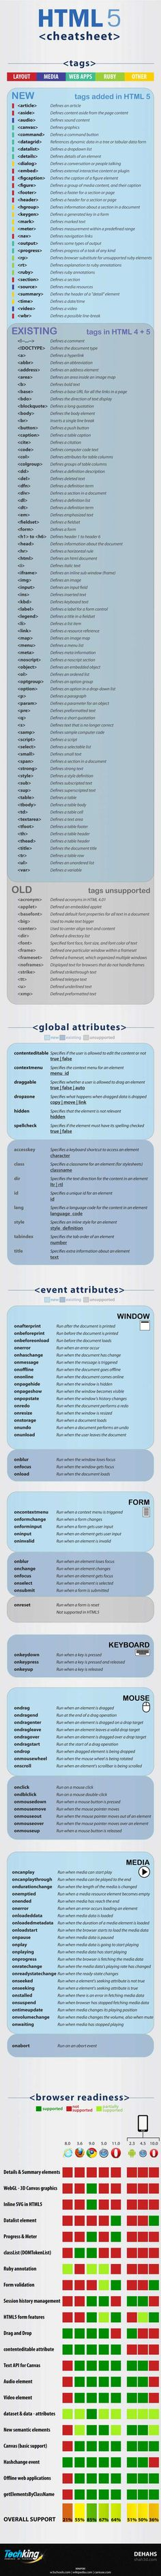 What is HTML5? & Ultimate HTML5 Cheatsheet [INFOGRAPHIC]